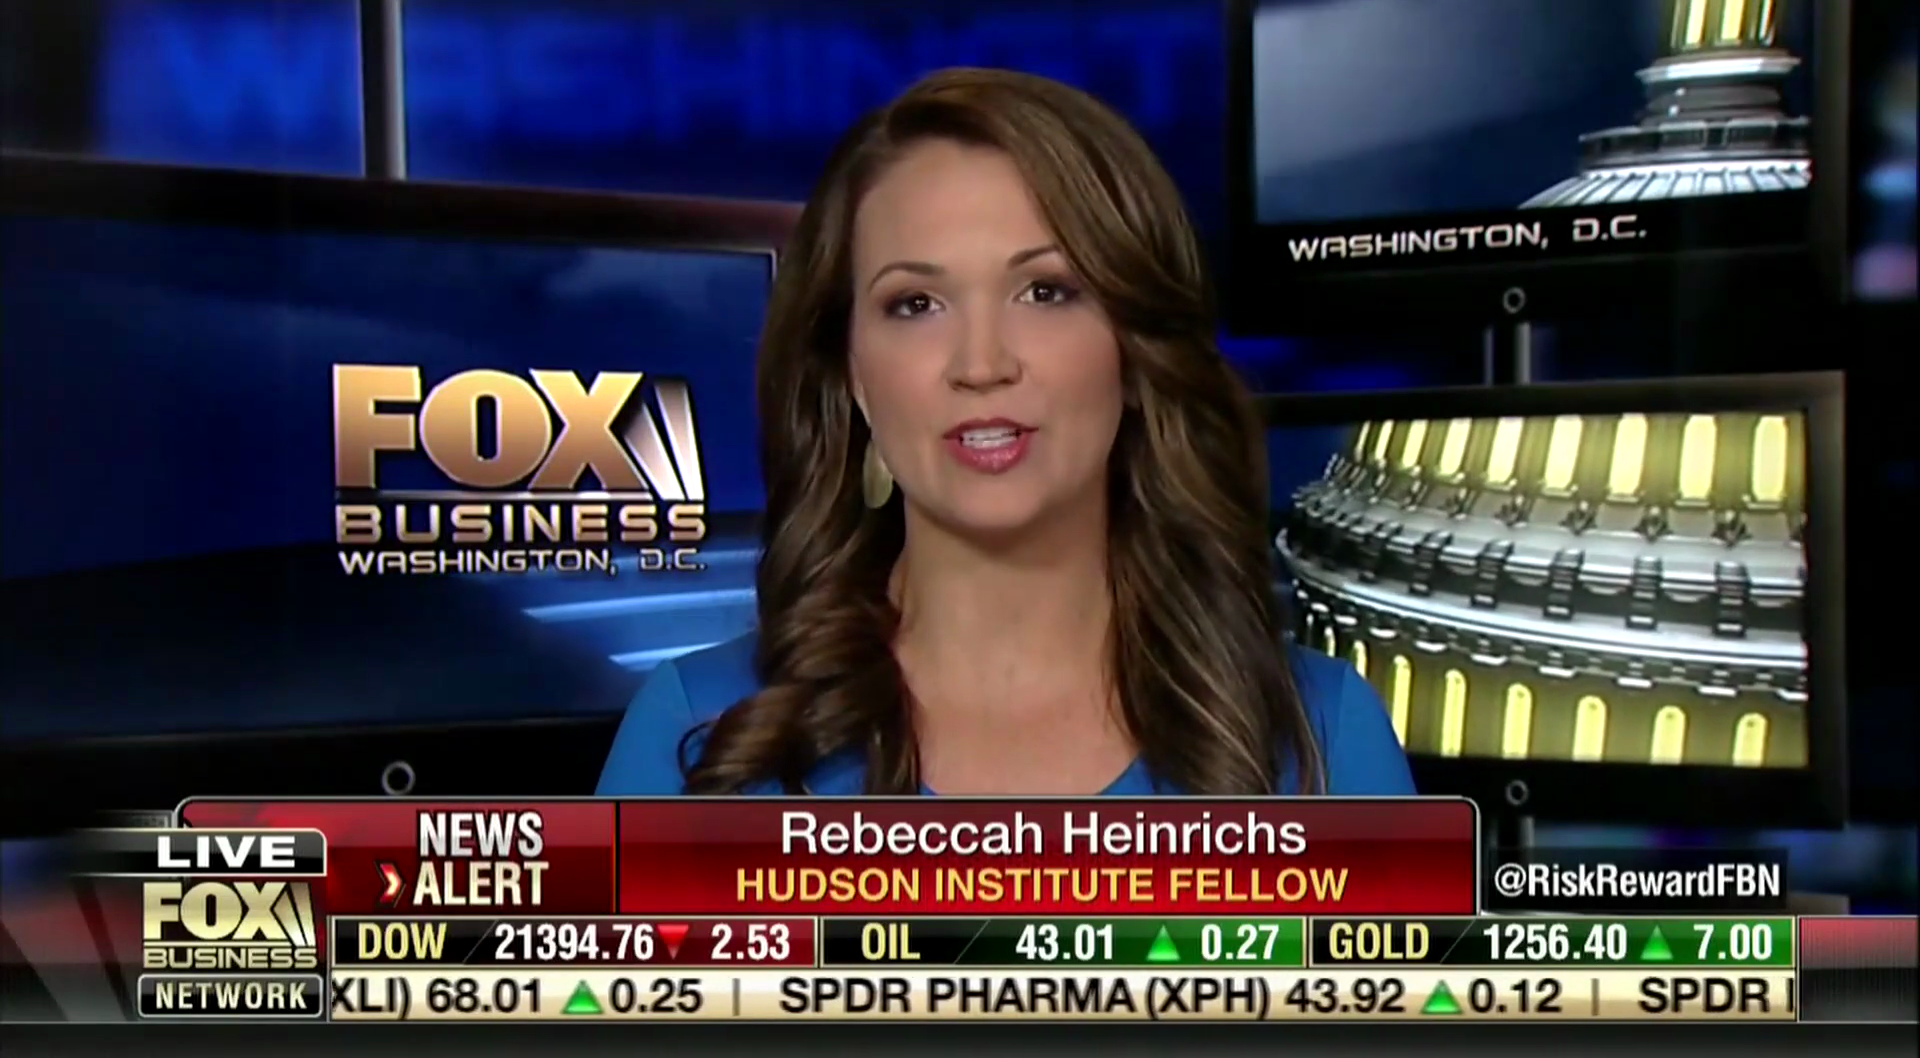 Rebeccah Heinrichs on Fox Business, June 23, 2017